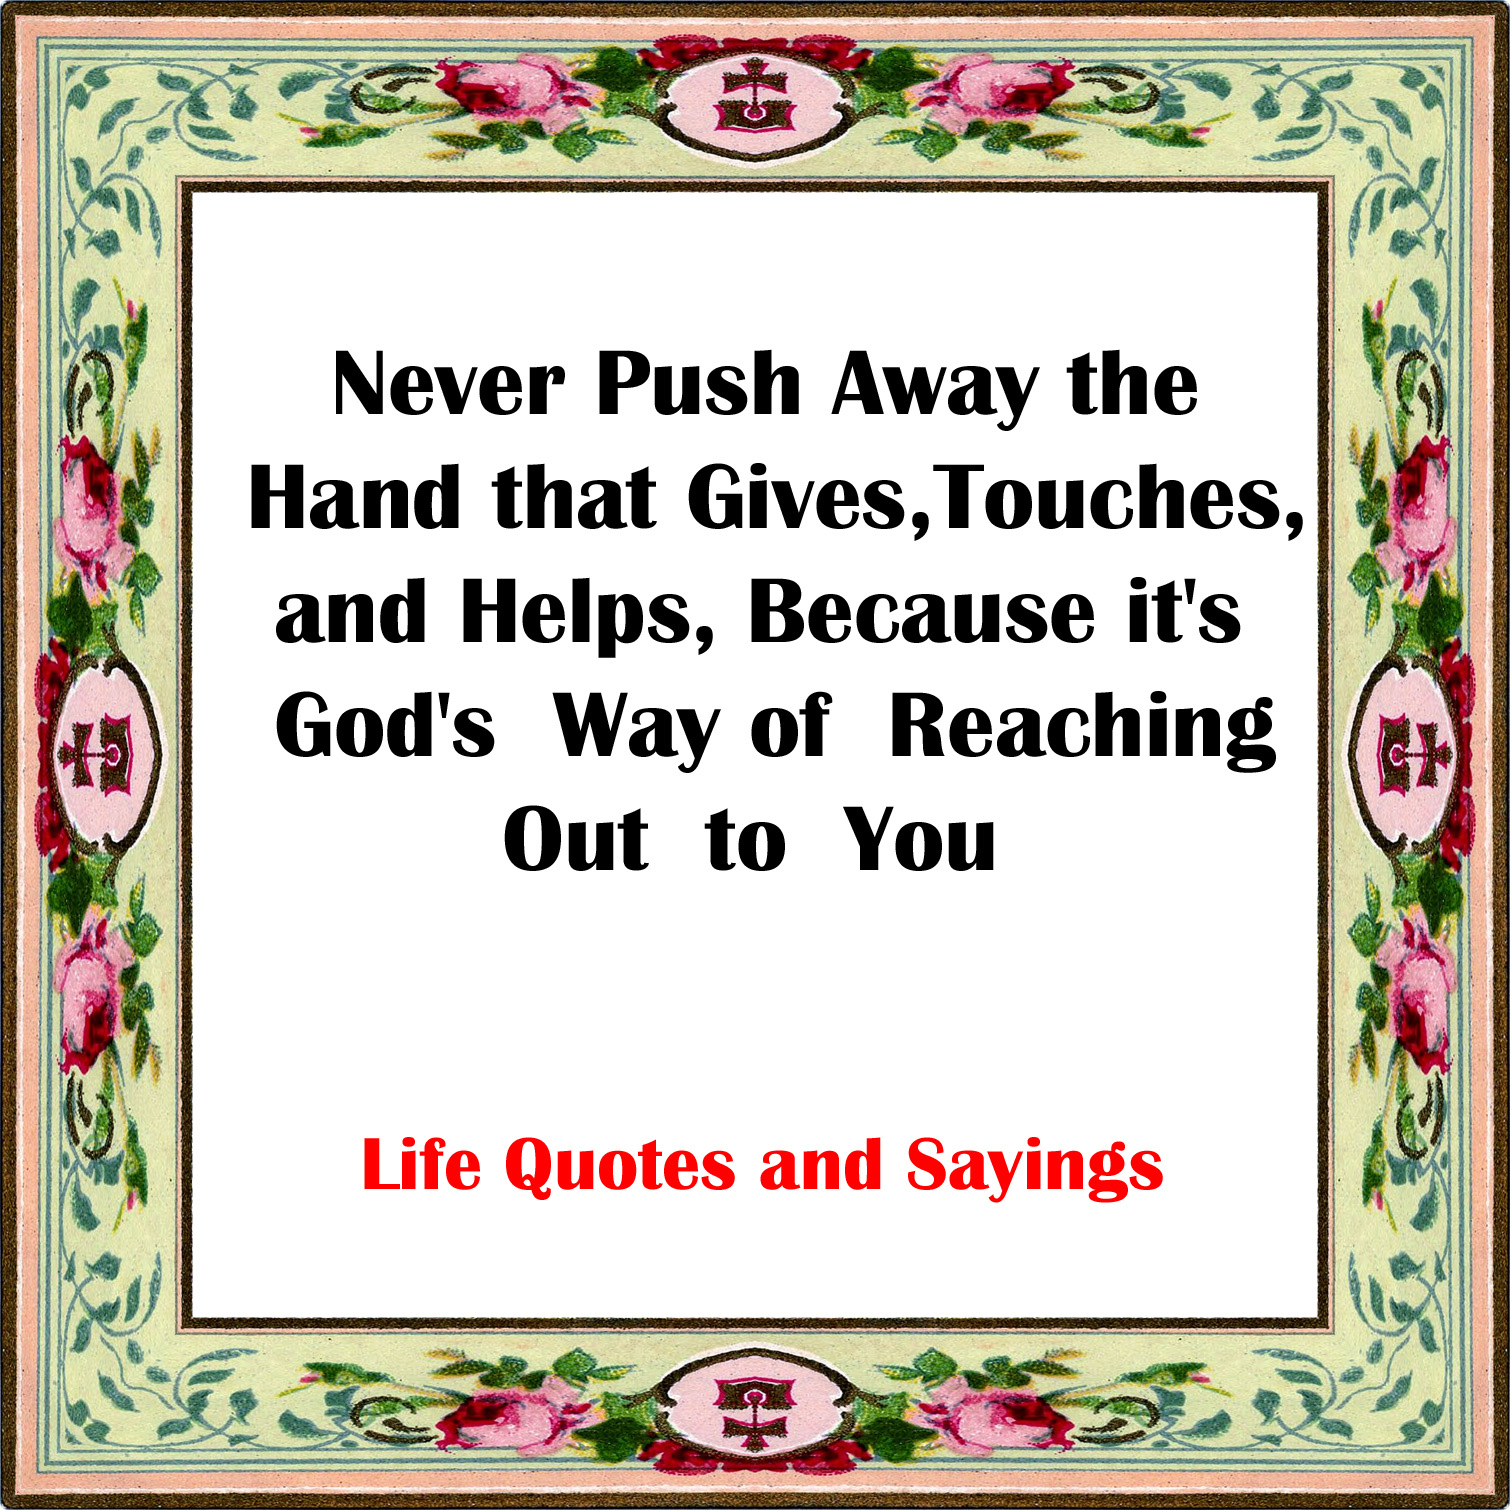 God Quotes Life Quotes And Sayings God's Way Of Reaching Out To You